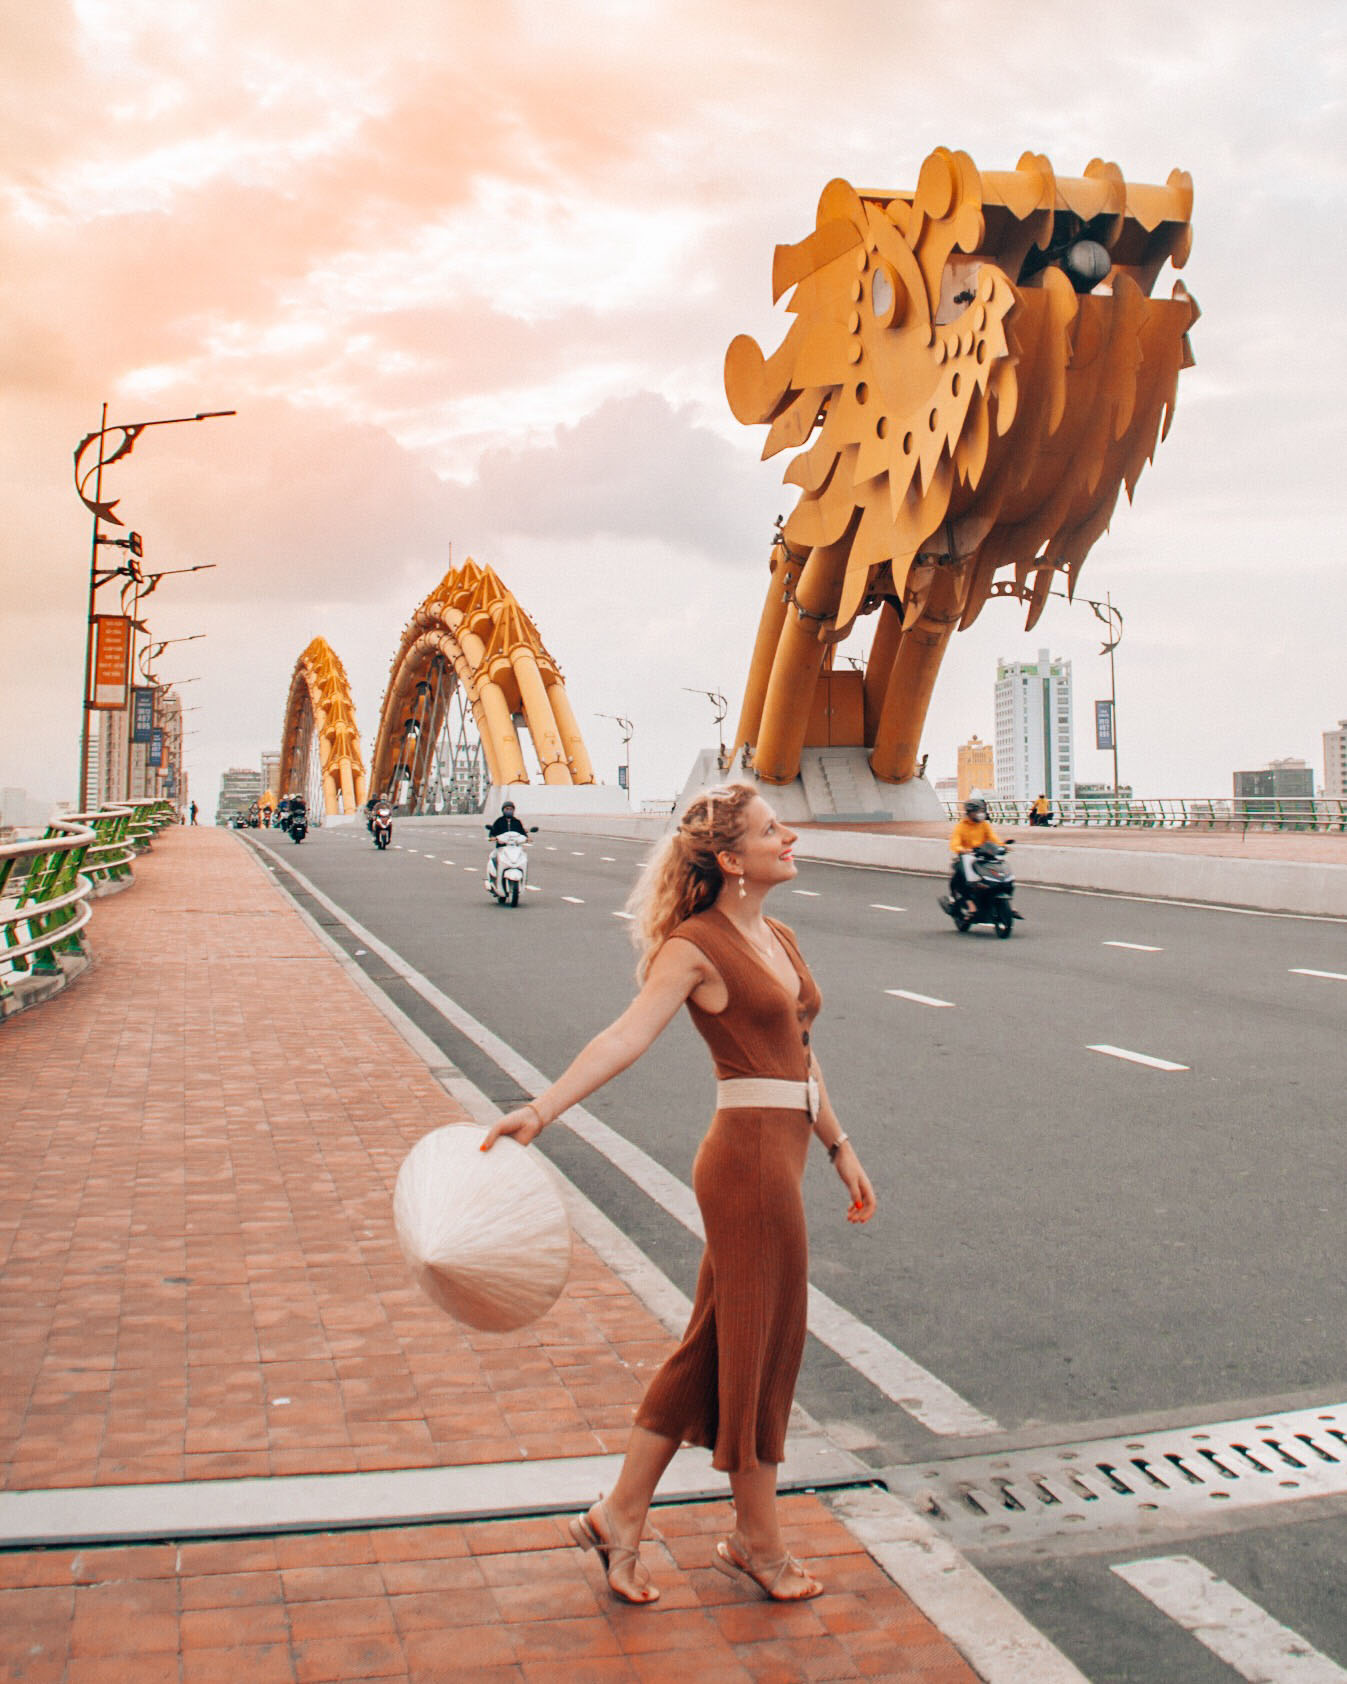 Enjoy the sunset golden hour colors on the Dragon Bridge in Da Nang, Vietnam